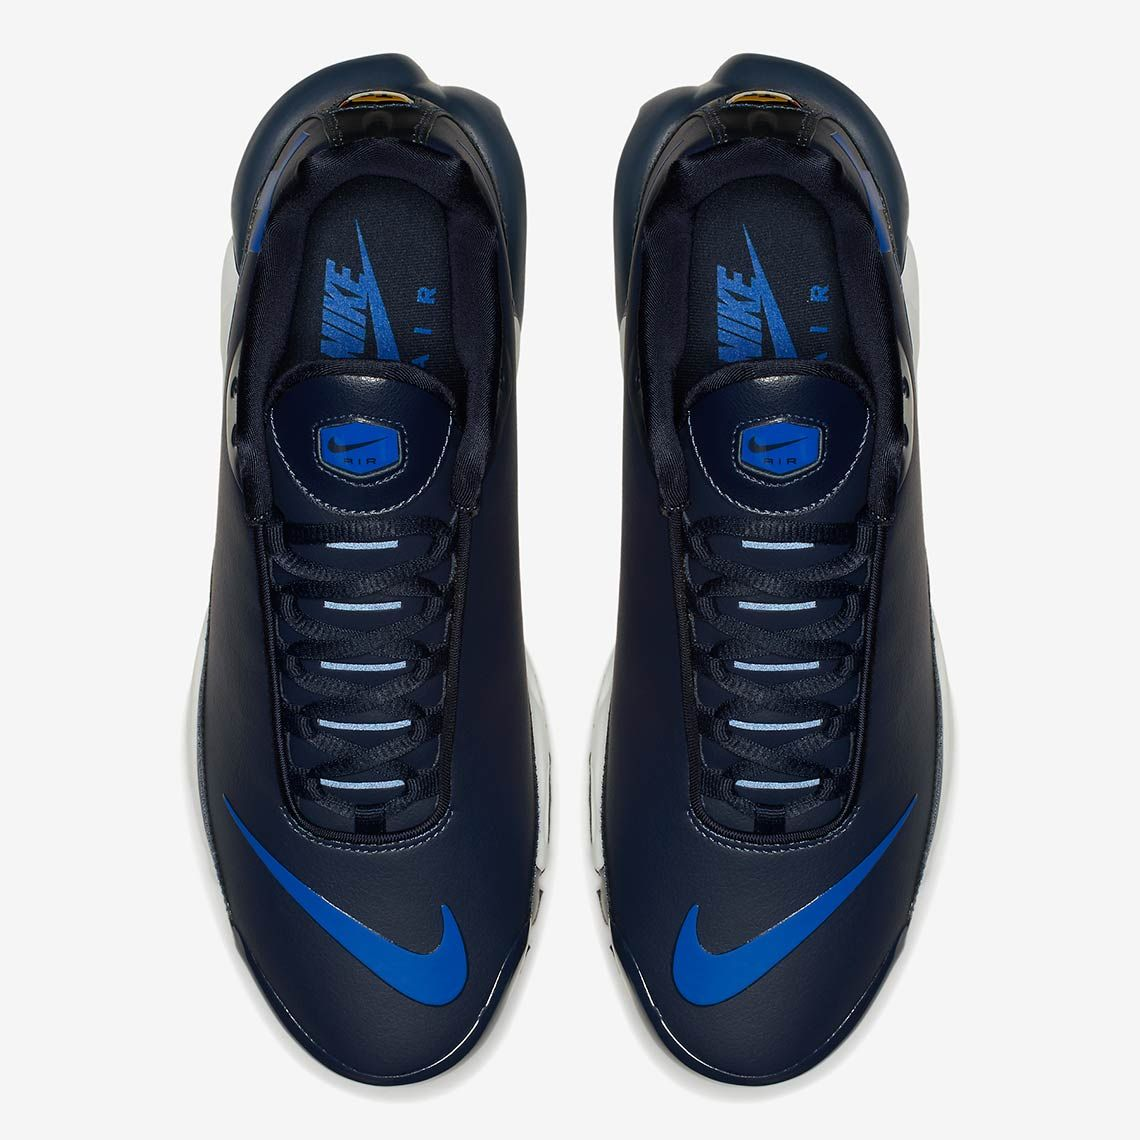 best website a6c72 2fd97 The Nike Mercurial TN Is Releasing In Navy And Royal